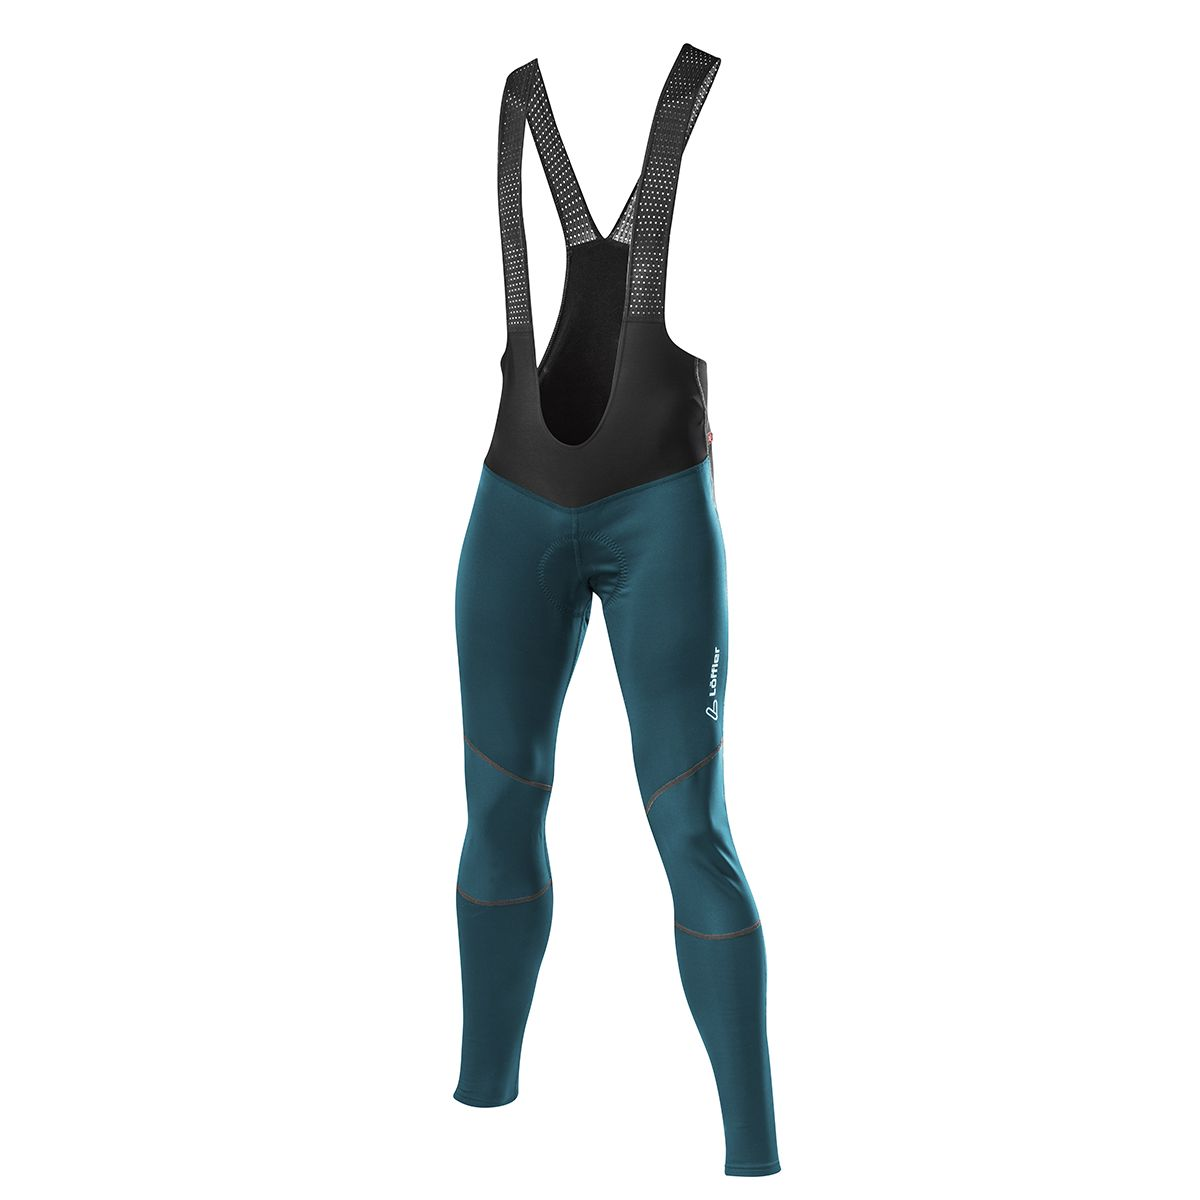 BIKE BIB PANTS CRUISER WS SOFTSHELL WARM (MS) bib tights